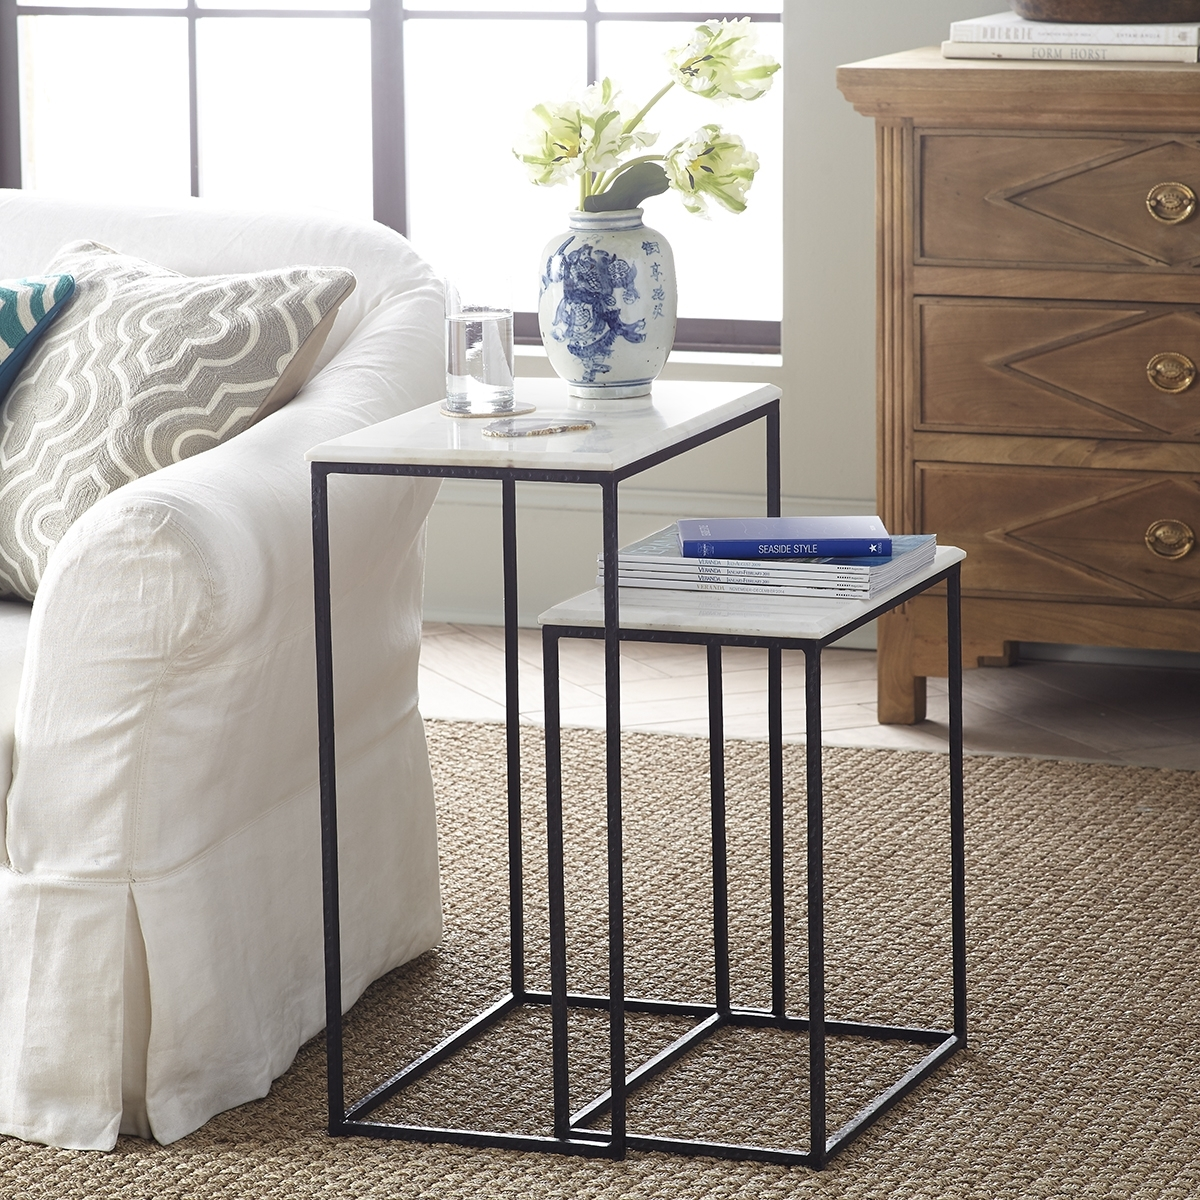 Marble Nesting Side Tables – Set Of 2 | Wisteria Regarding Set Of Nesting Coffee Tables (View 18 of 30)